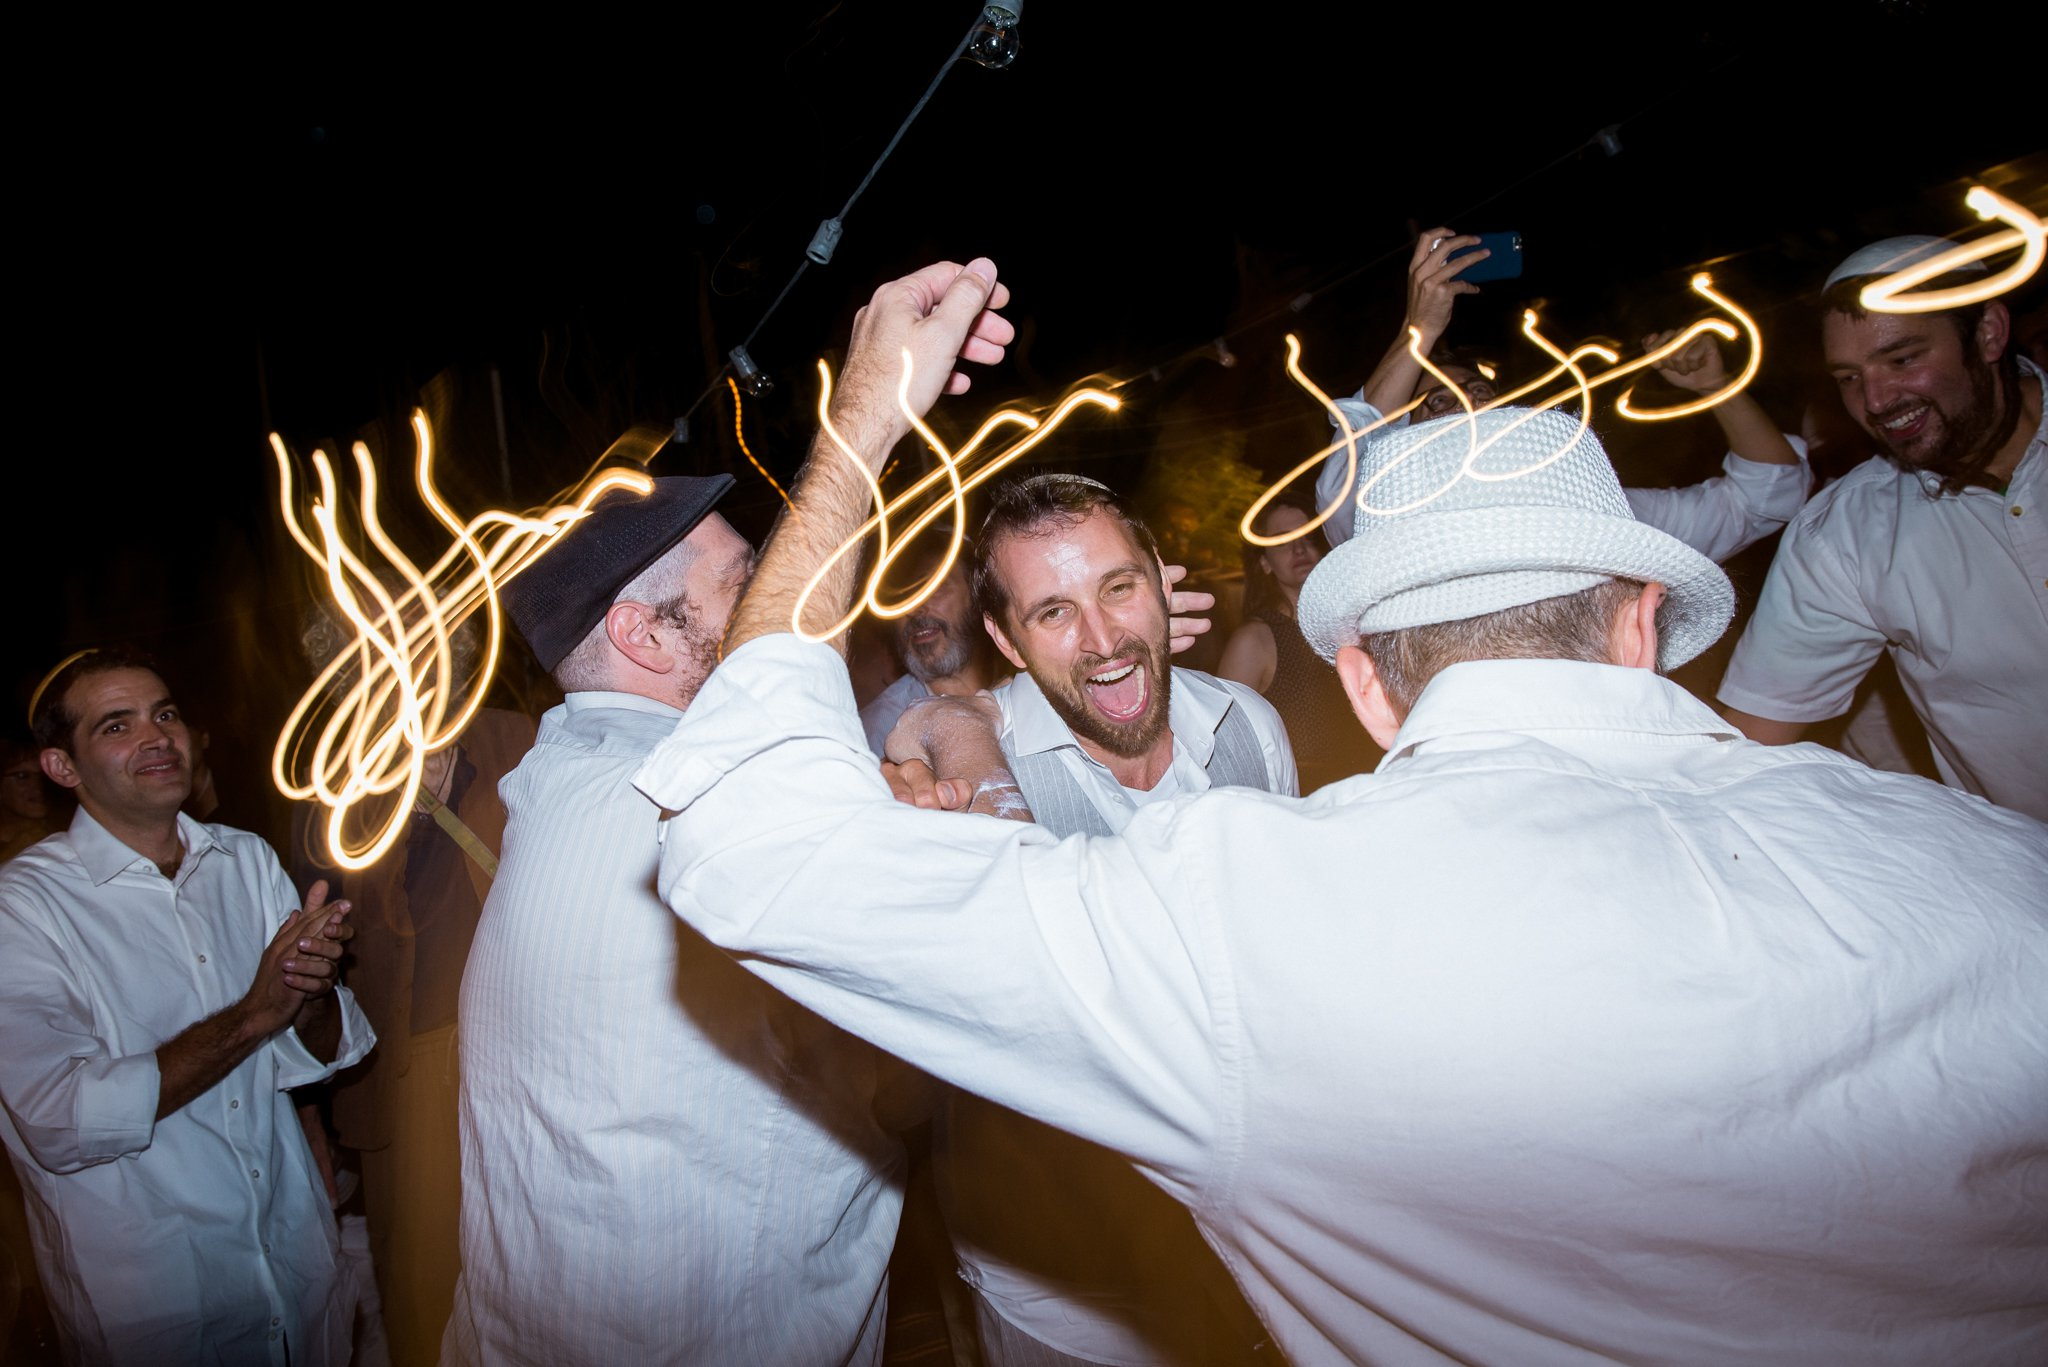 jewish-wedding-binyamina-israel-kate-giryes-photography-234_WEB.jpg